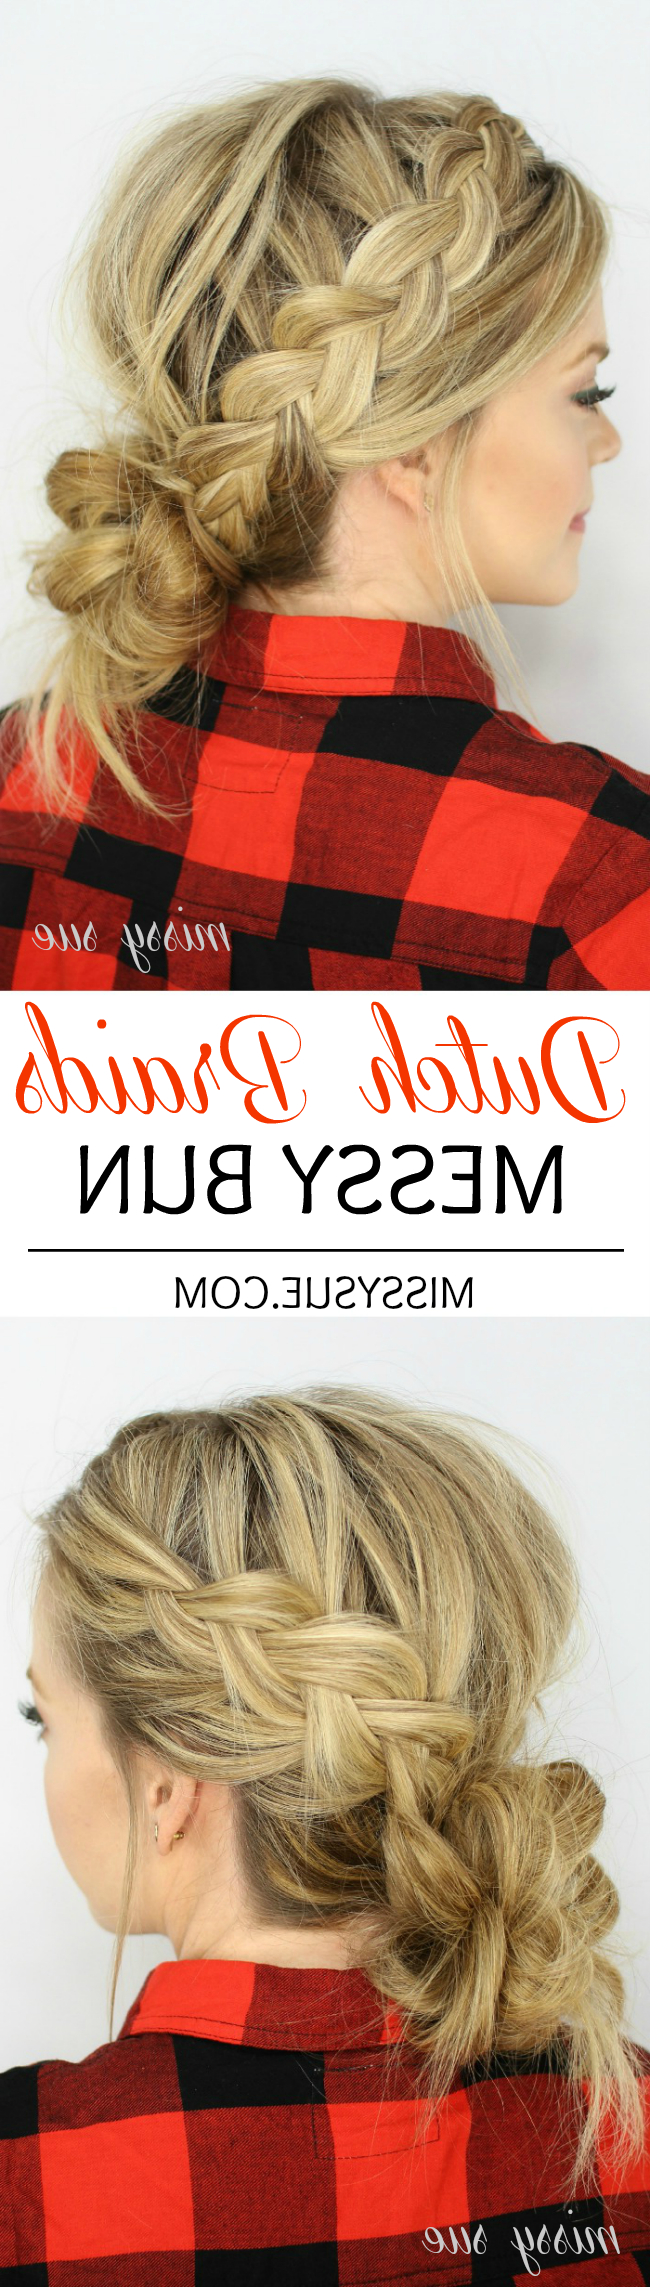 Dutch Braids And Low Messy Bun Pertaining To Well Known Dutch Braid Bun Hairstyles (View 19 of 20)